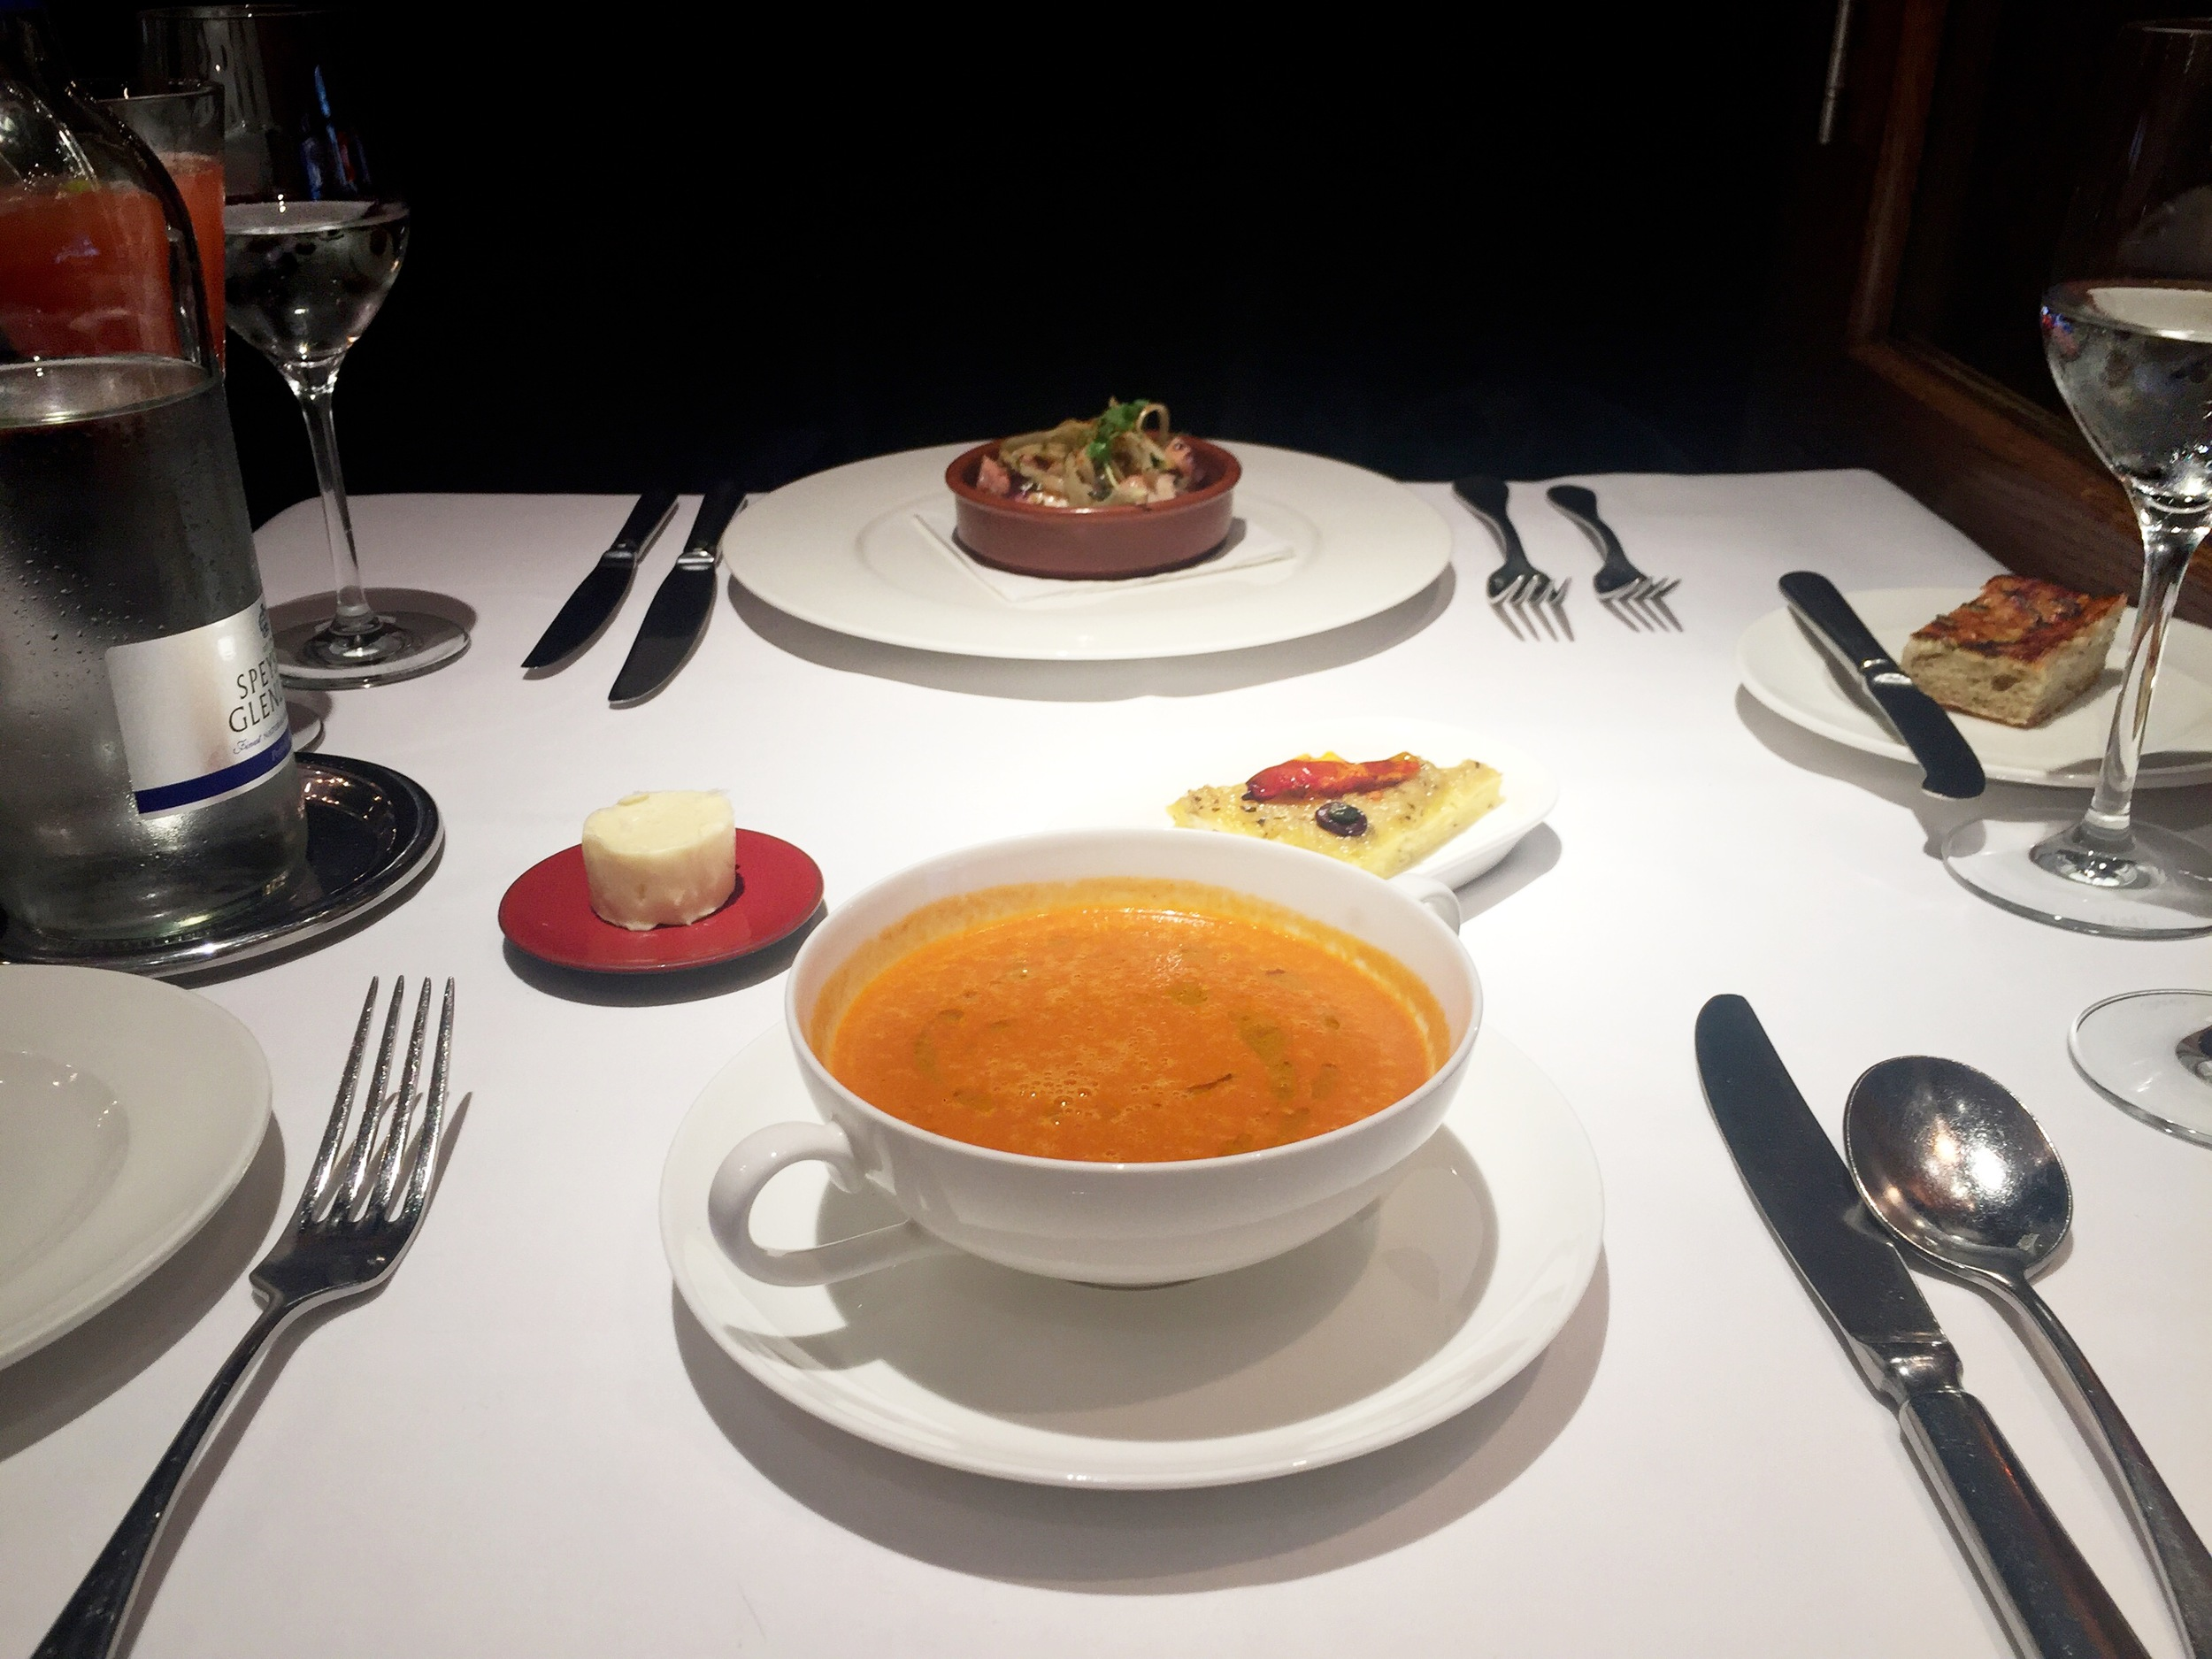 Starter: Creme of Tomato Soup and Marinate Spanish Octopus 'Provencal Style' with Fennel, New Potatoes & Piperade.